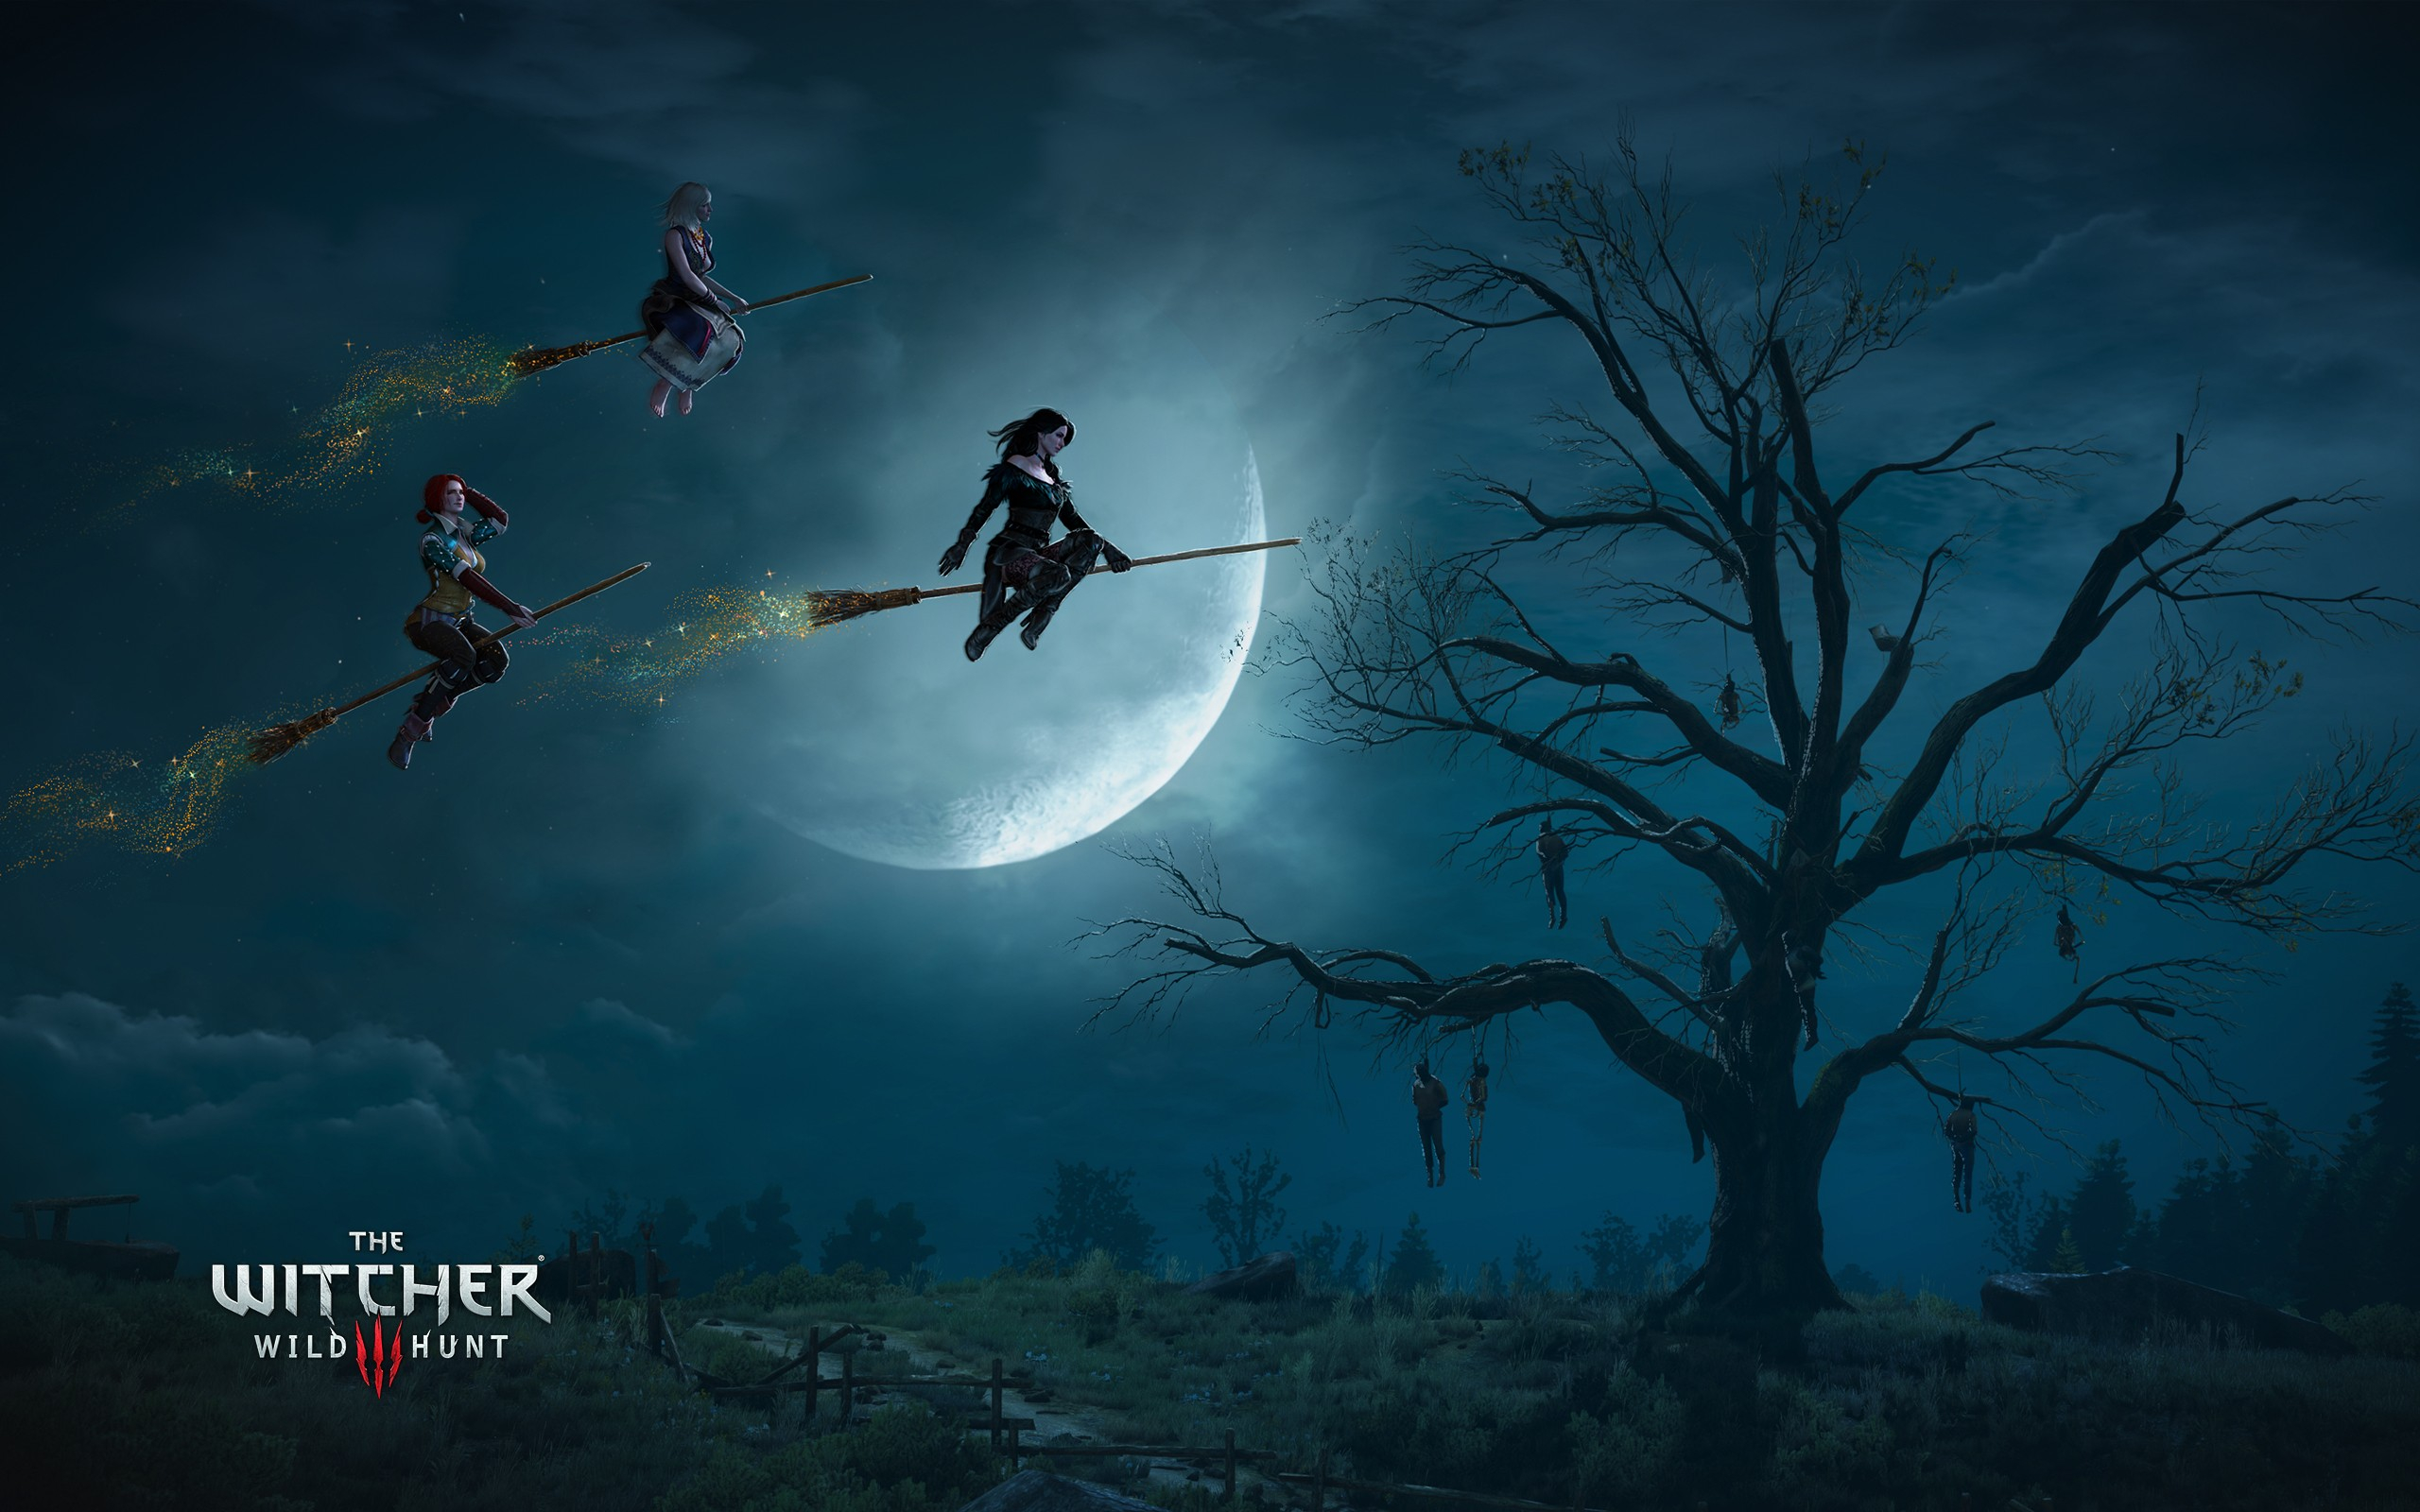 the witcher 3 wild hunt witches wallpapers